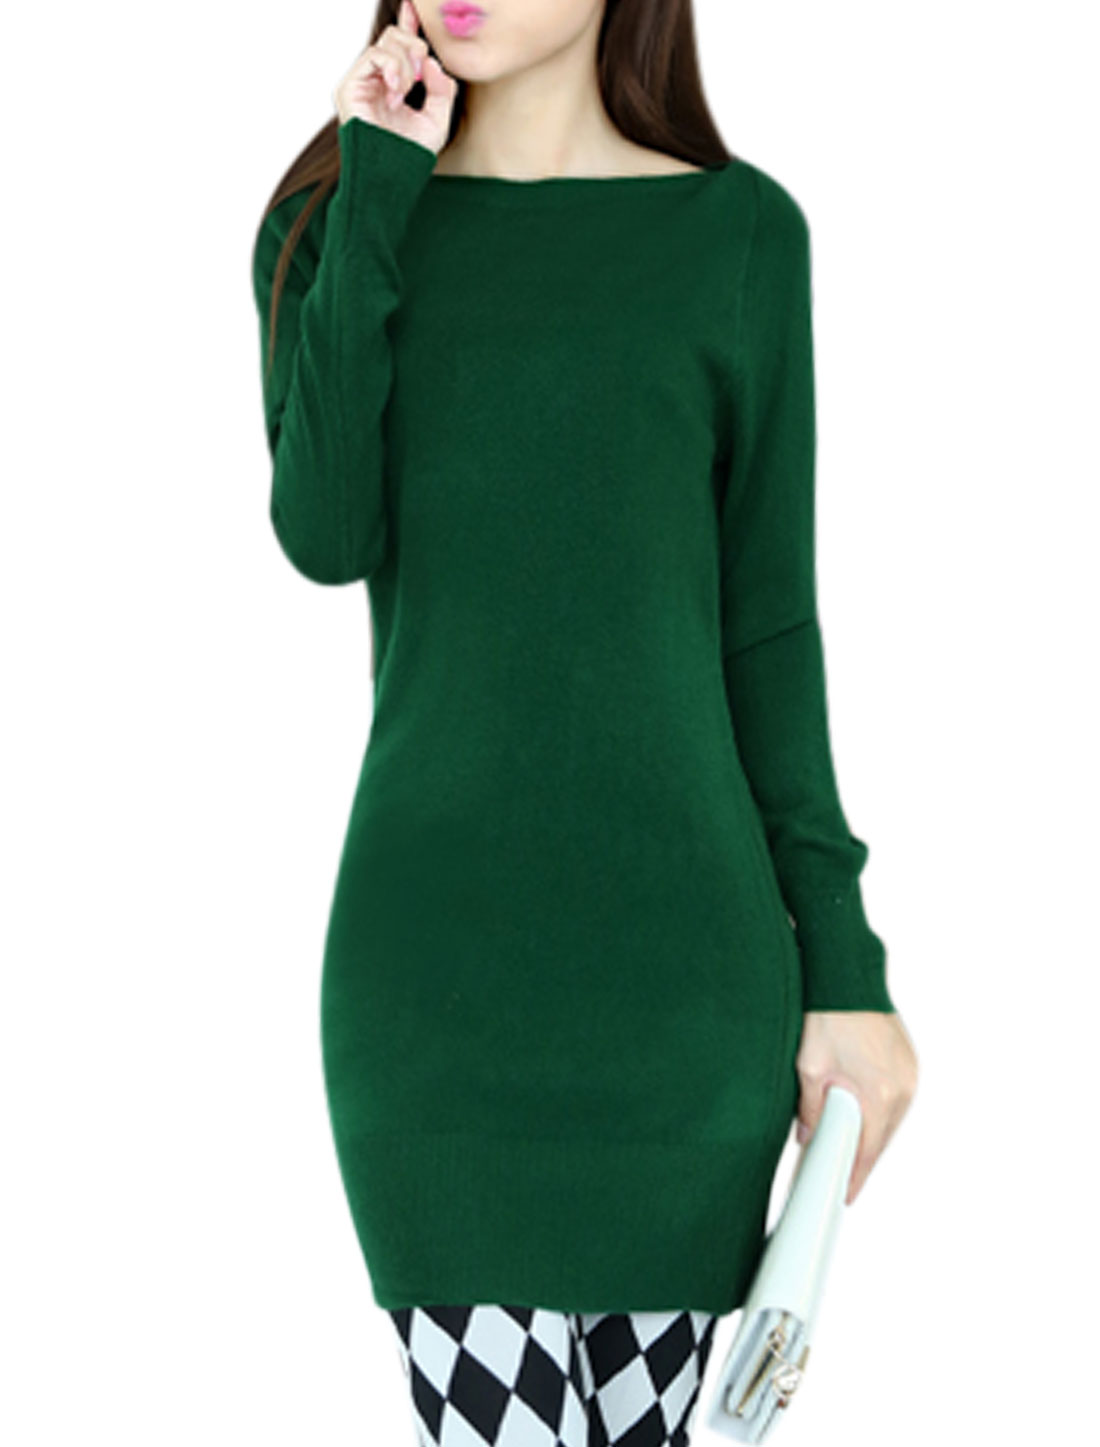 Stretchy Full Sleeves Dusty Green Tunic Knit Top for Woman S